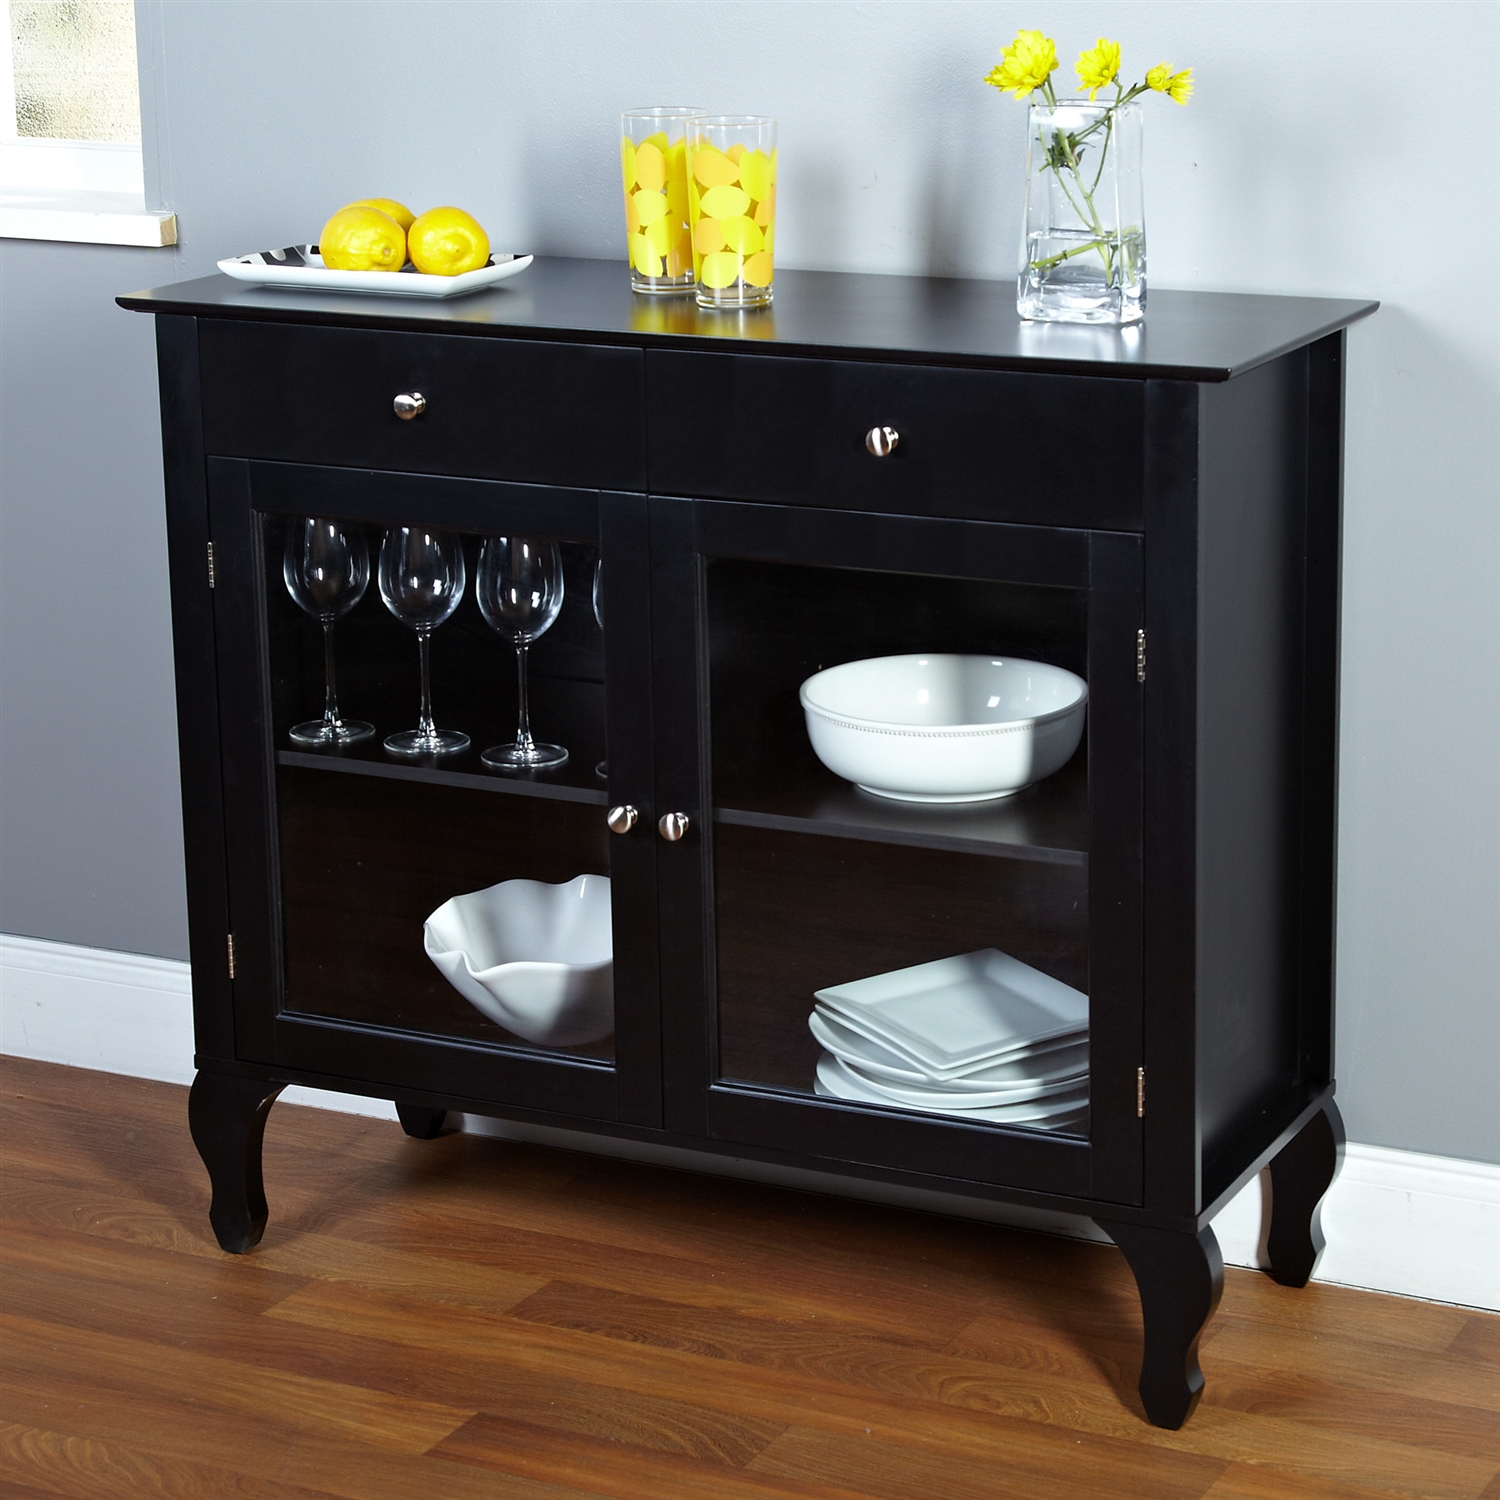 Complete the look of your living space with this Black Dining Room Buffet Sideboard Server Cabinet with Glass Doors. The buffet features two drawers, and two inner adjustable shelves for plenty of storage. Constructed of engineered wood, wood, tempered glass. Distressed: No; Glass Doors: Yes; Base Material: Top Material: Wood; Manufactured wood; Solid Wood Construction: No; Display Case: Yes; Drawers Included: Yes; Cabinets Included: Yes; Shelves Included: Yes; Doors Included: Yes.